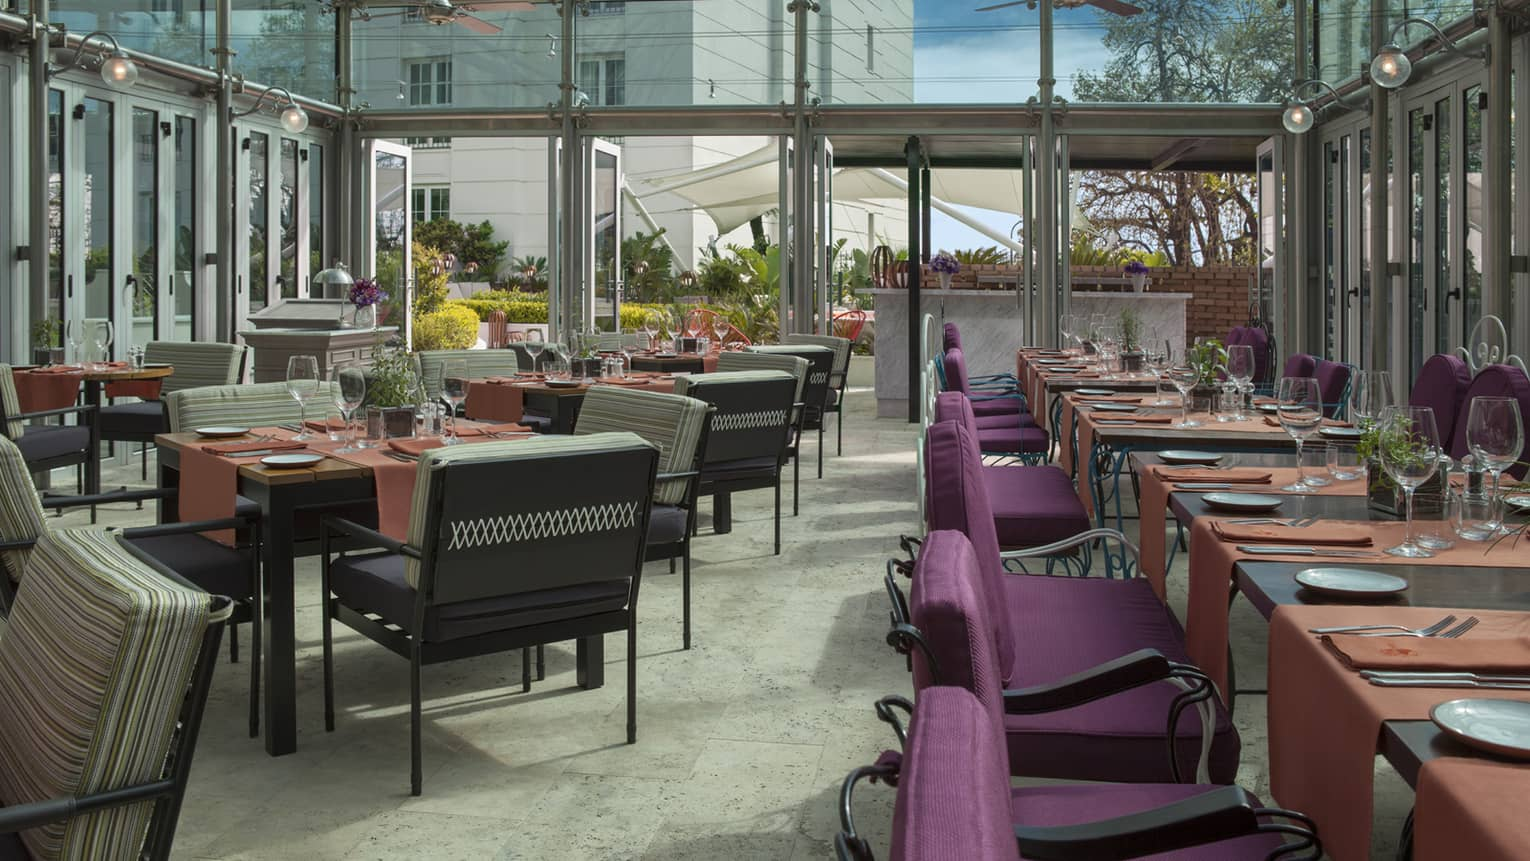 Nuestro Secreto outdoor dining room in glass patio with purple chairs, orange linens on table